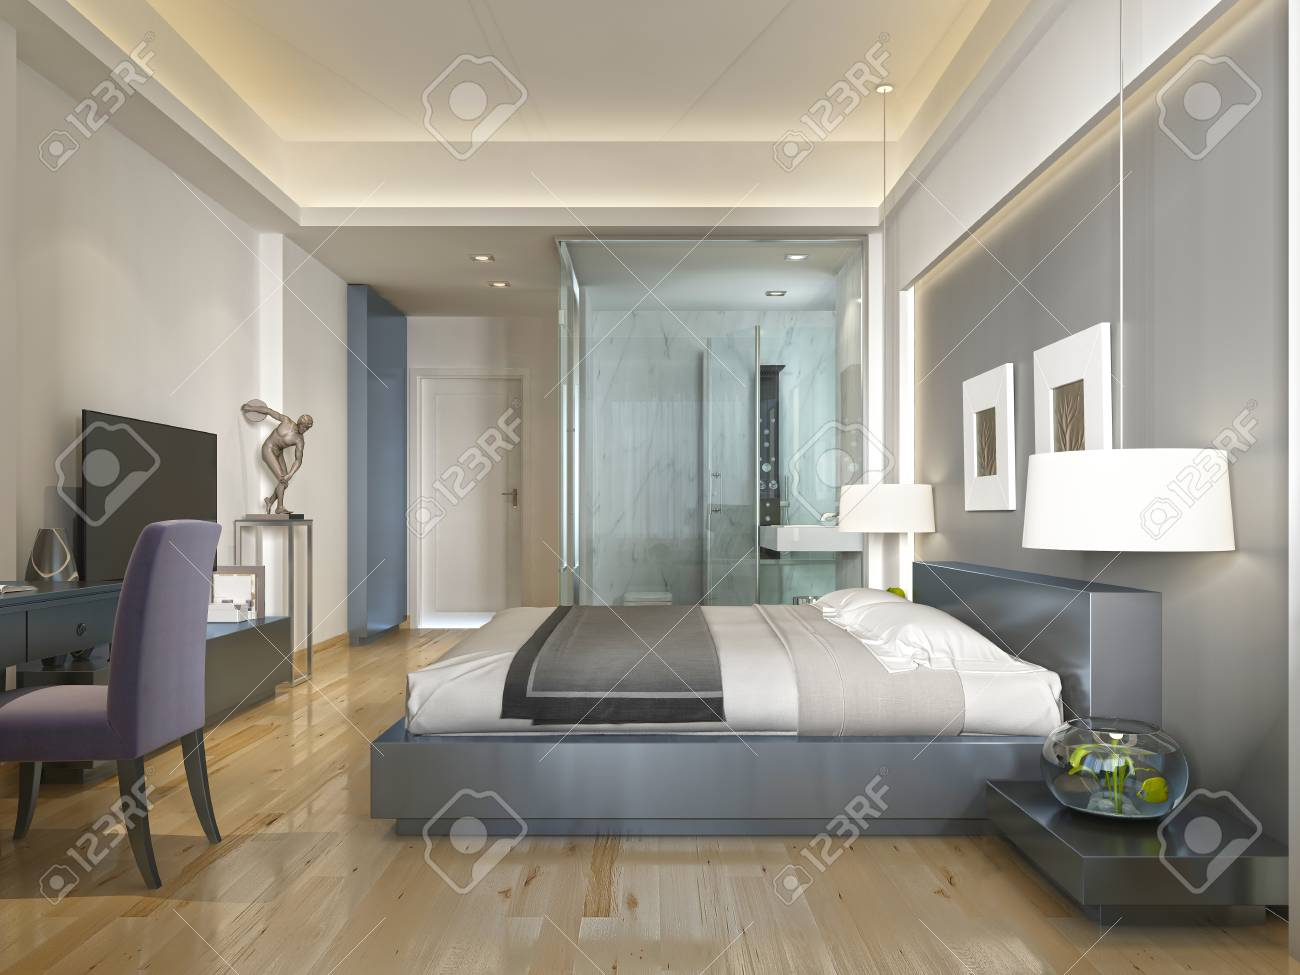 Chambre D Hotel Deco modern hotel room with large bed, contemporary style with elements..